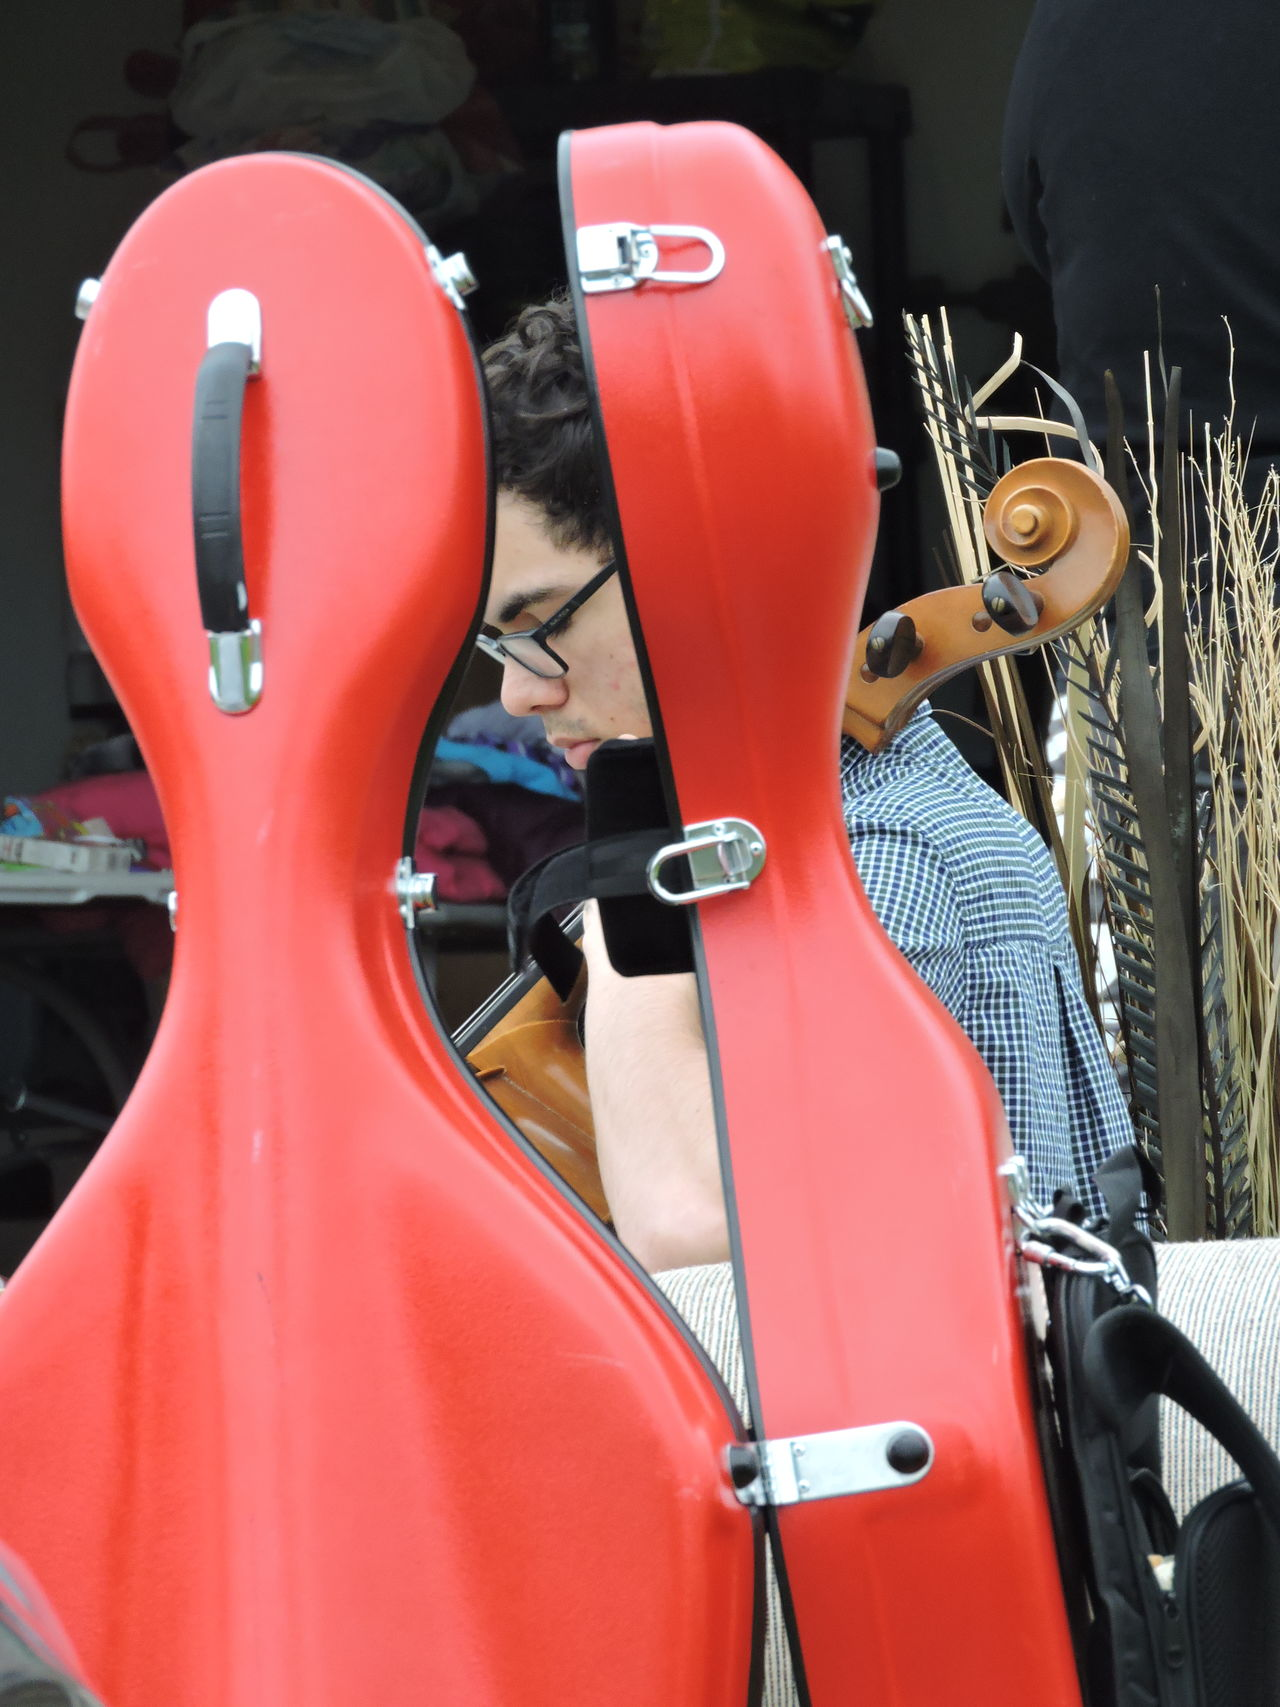 Cello♡ Day Garage Sale Live Music Men Muscial Instrument One Person Only Outdoors Real People Togetherness